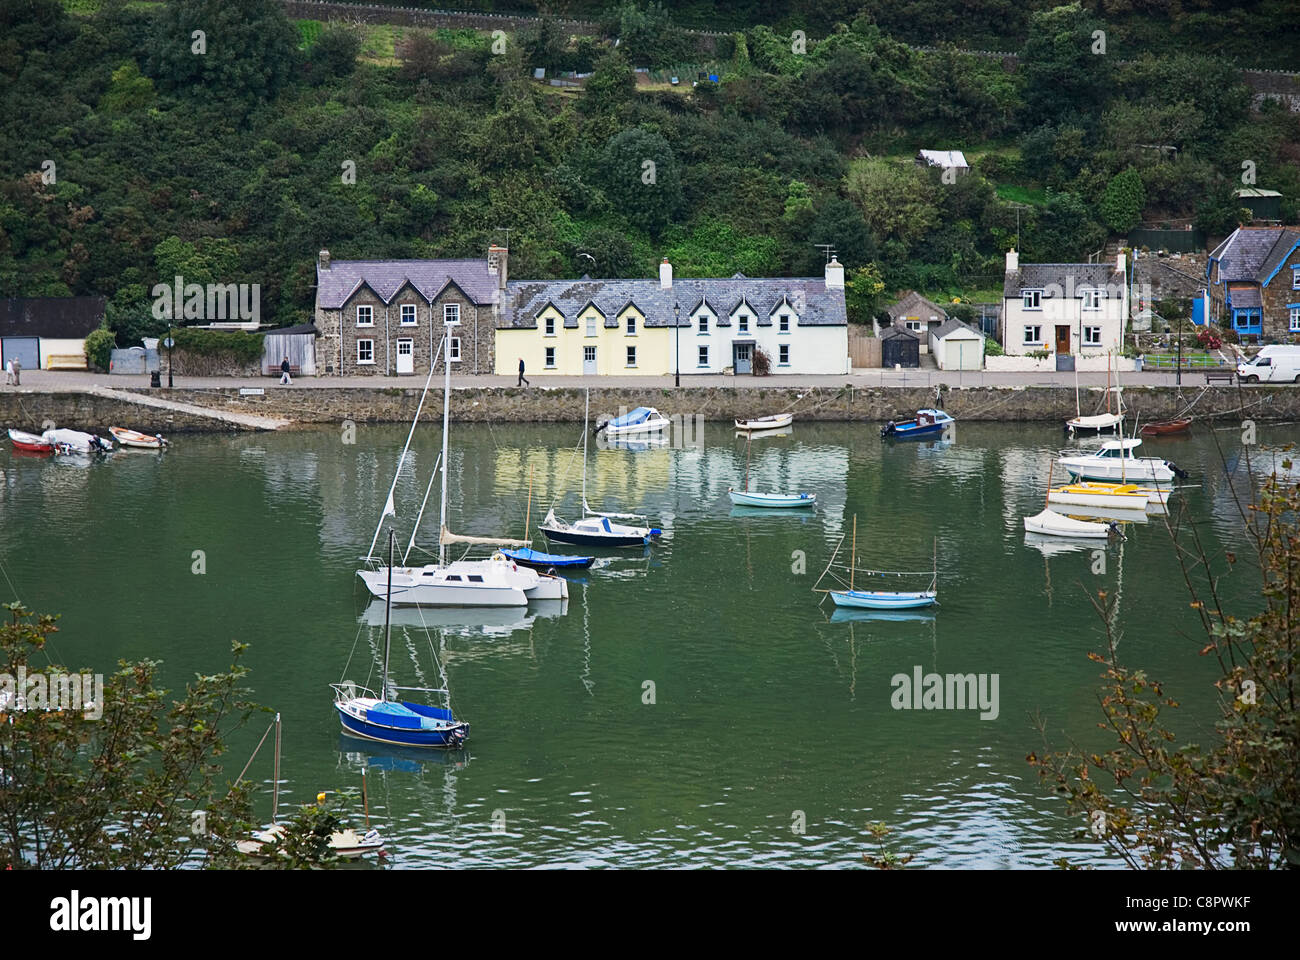 Great Britain, Wales, Pembrokeshire, Fishguard, Lower Fishguard on the River Gwaun - Stock Image